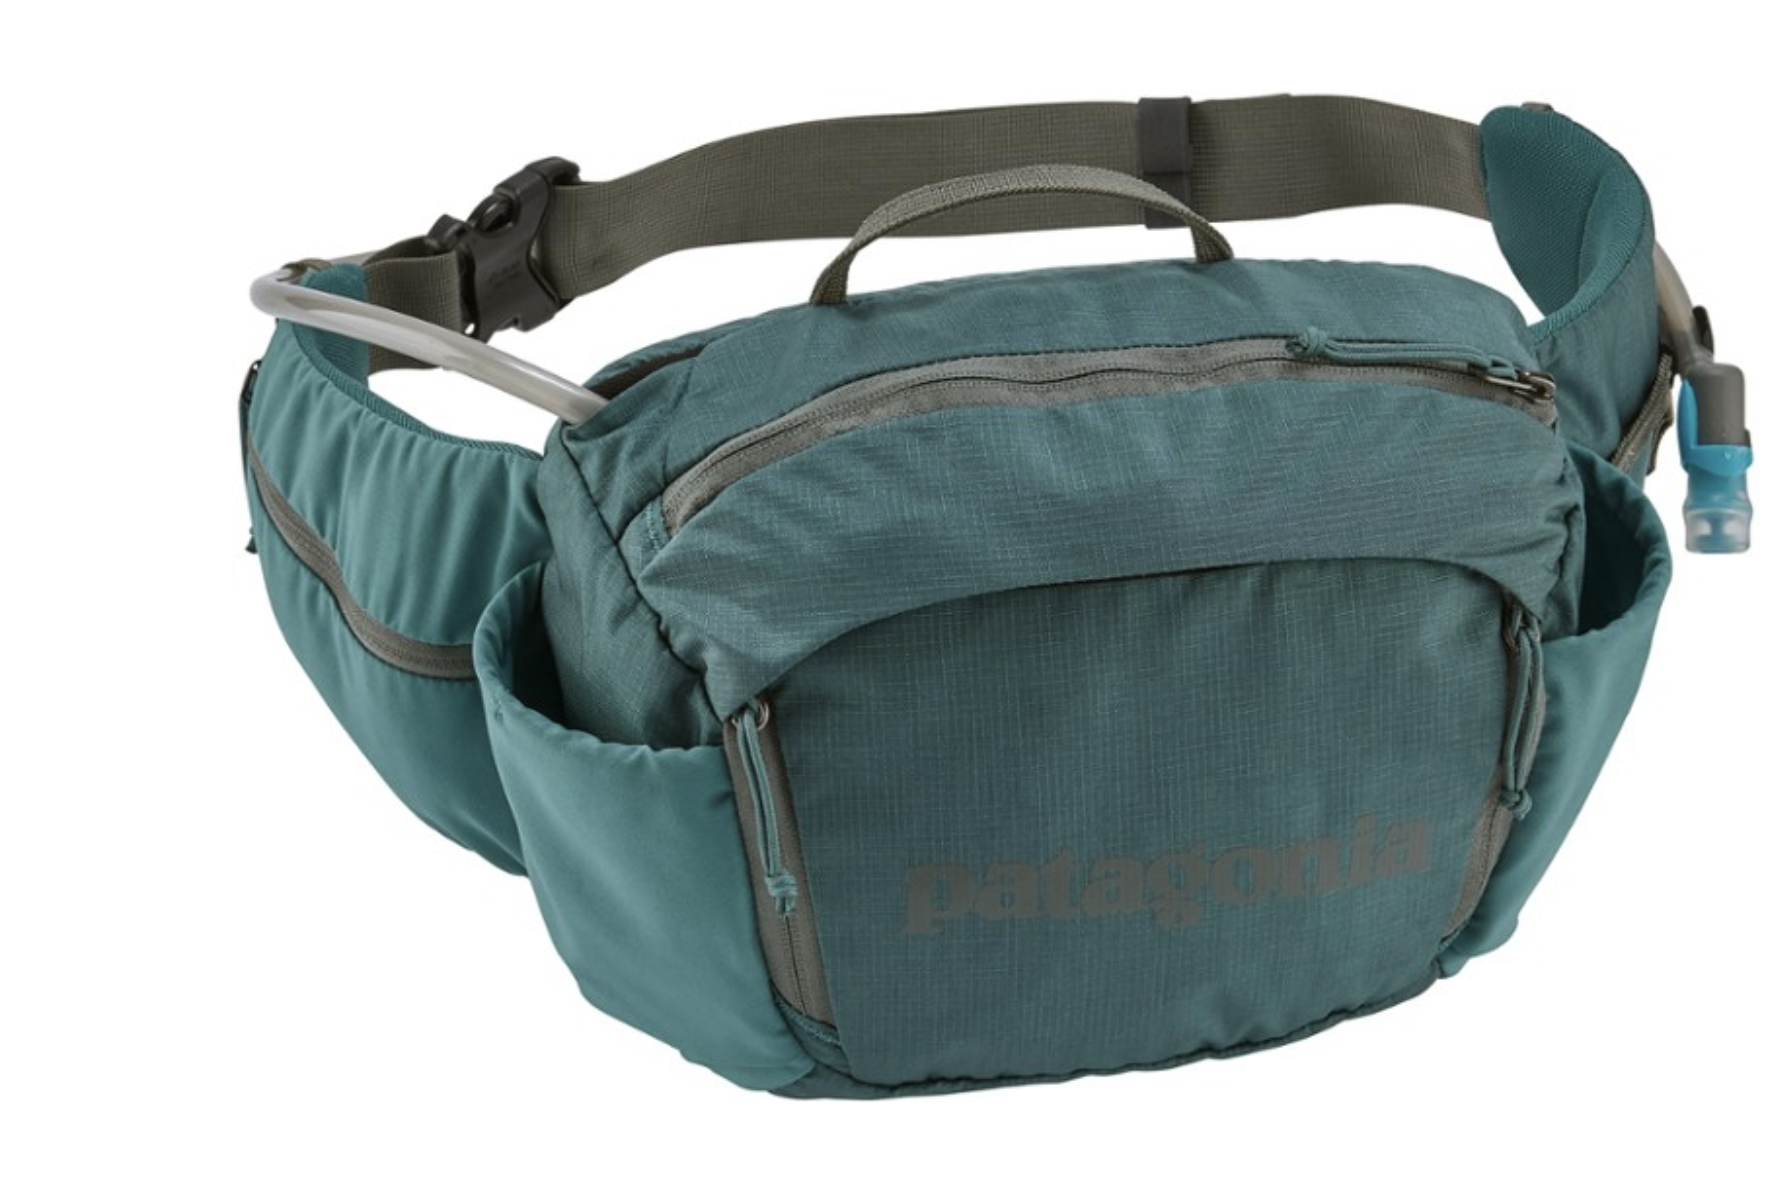 THE PACK - While this waist pack is a bit of an investment, we believe it's worth it. Coming in at just 13 ounces, this pack has a built-in Hydrapack® so you won't have to carry a water bottle and there's also plenty of room everything else you need. If you do prefer a backpack, we love this North Face lightweight backpack.